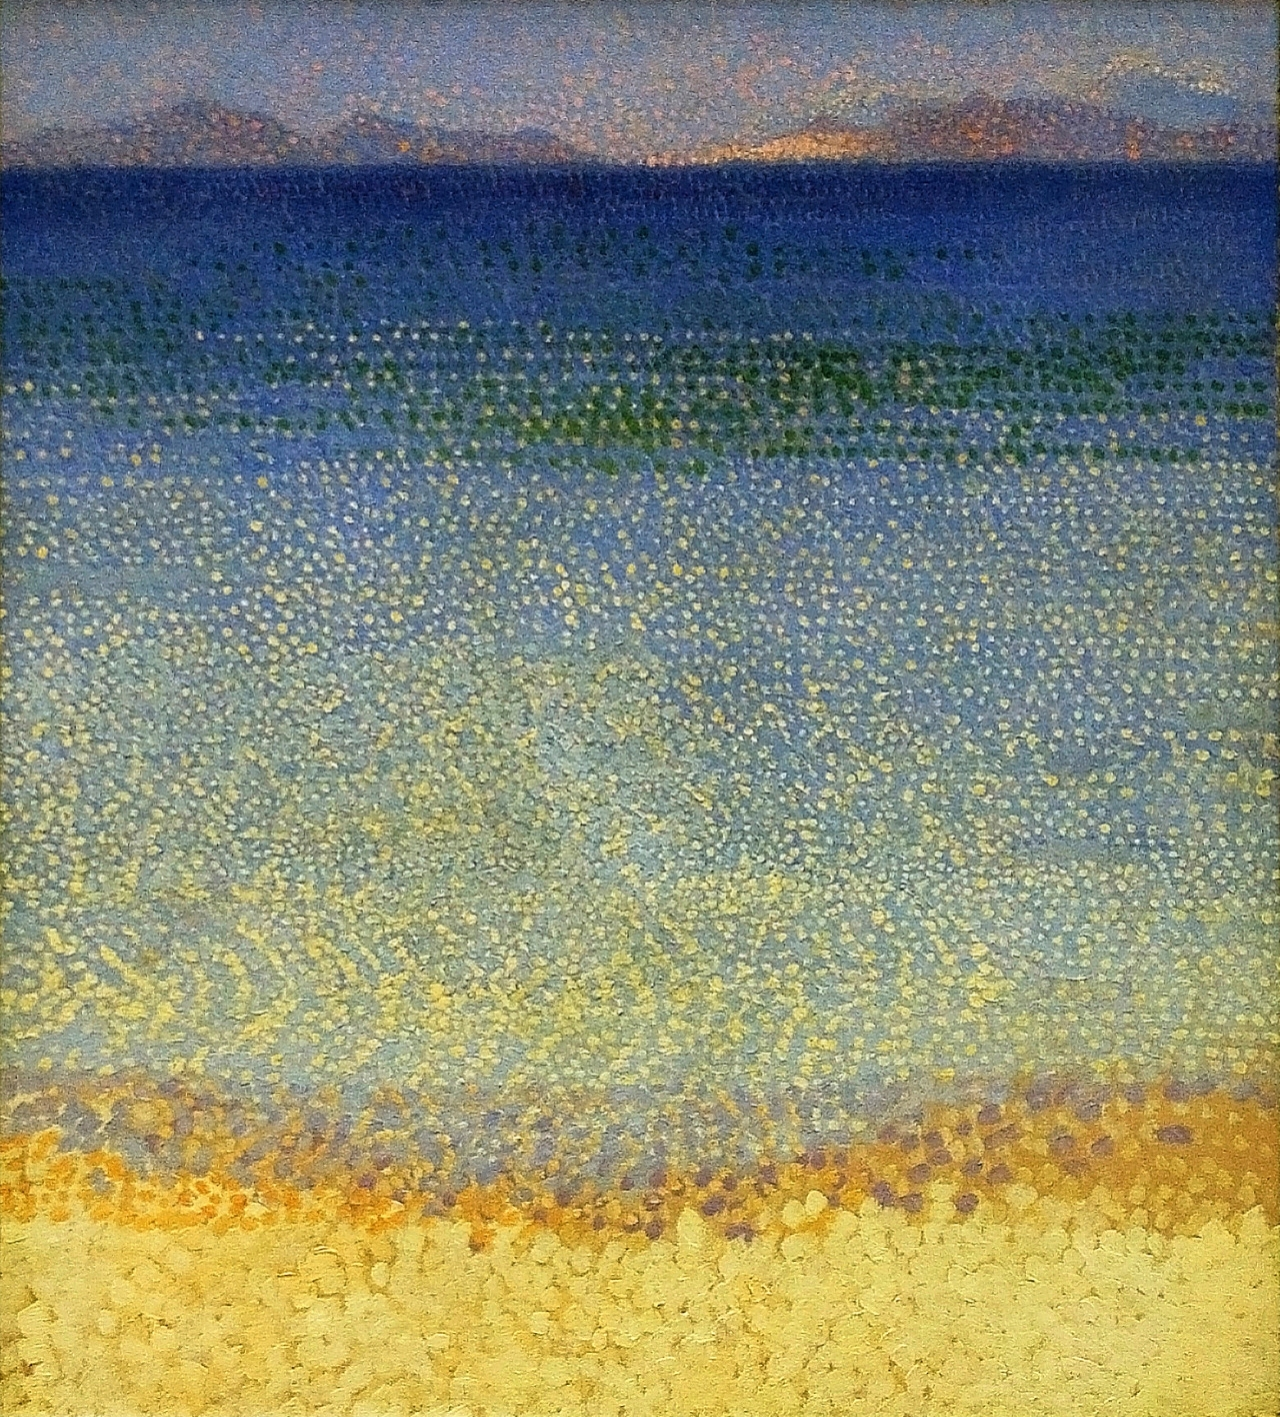 Les Iles d'Or (The Golden Isles) by Henri-Edmond Cross, circa 1891 - 1892